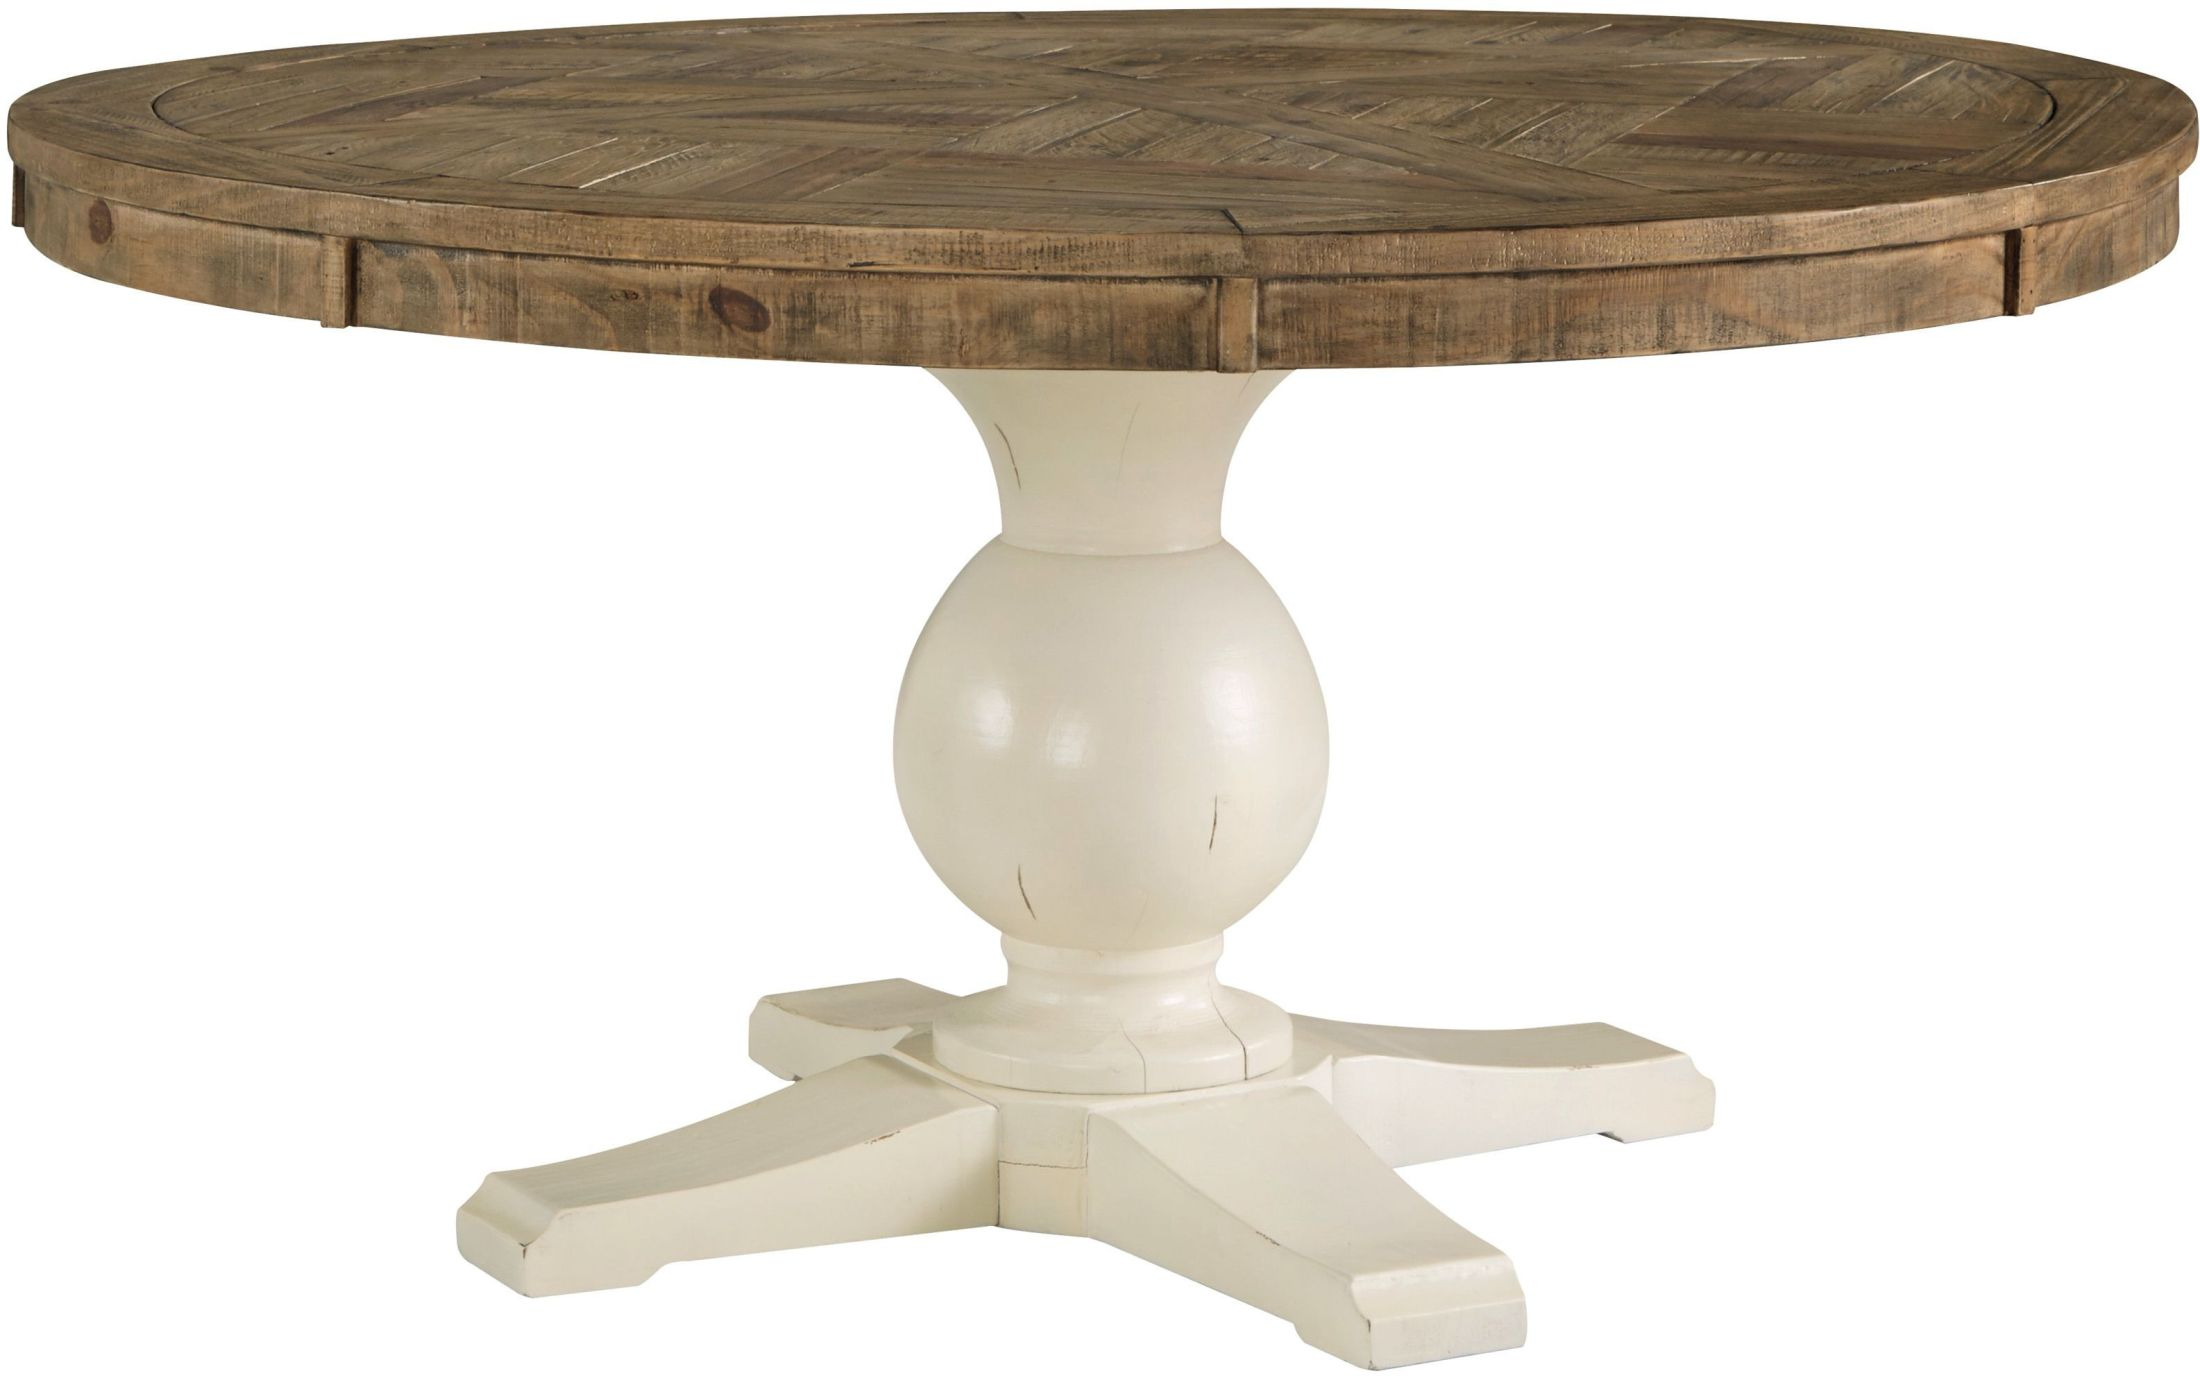 Round Table Bedroom Furniture: Signature Design By Ashley Grindleburg Light Brown Round